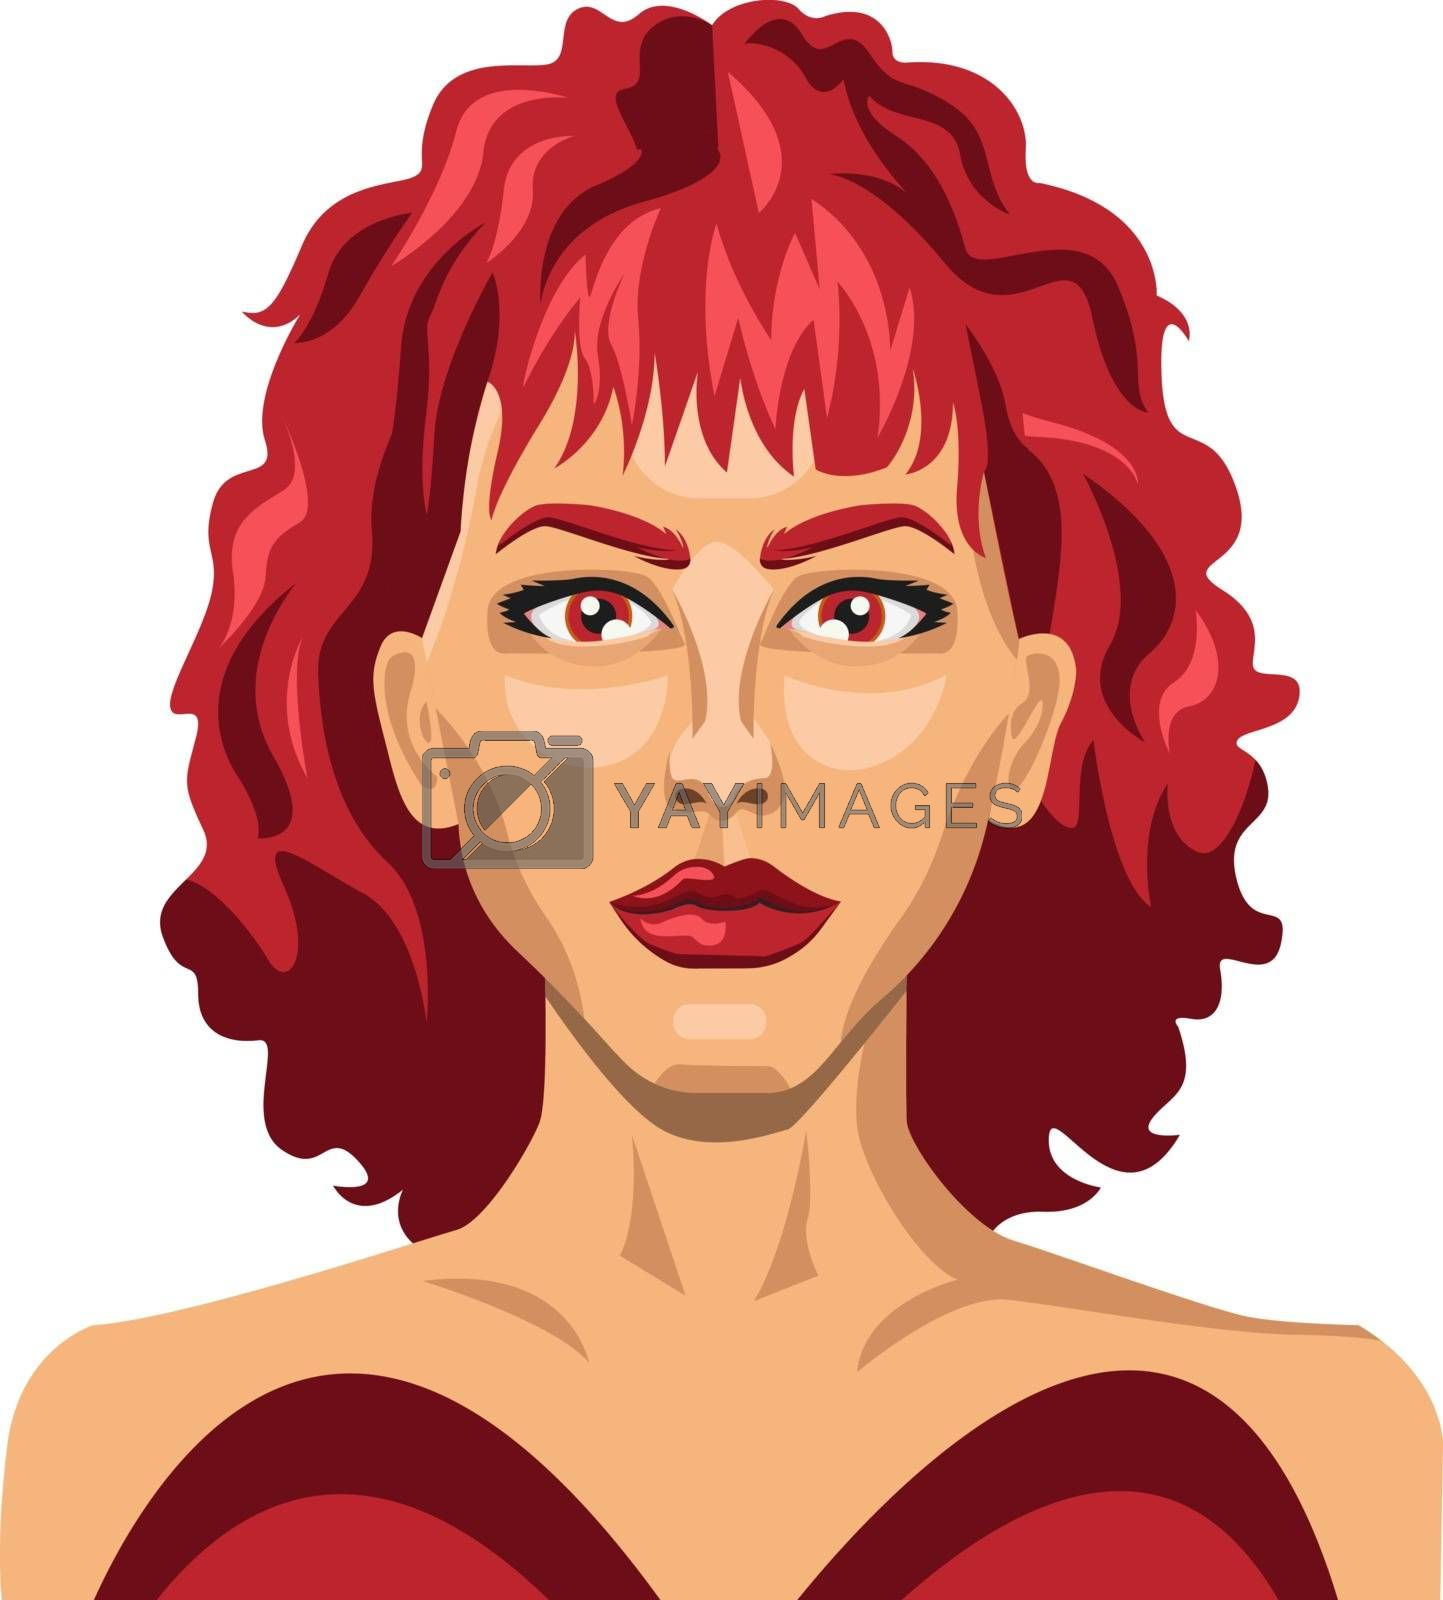 Royalty free image of Sexy girl with red hair illustration vector on white background by Morphart